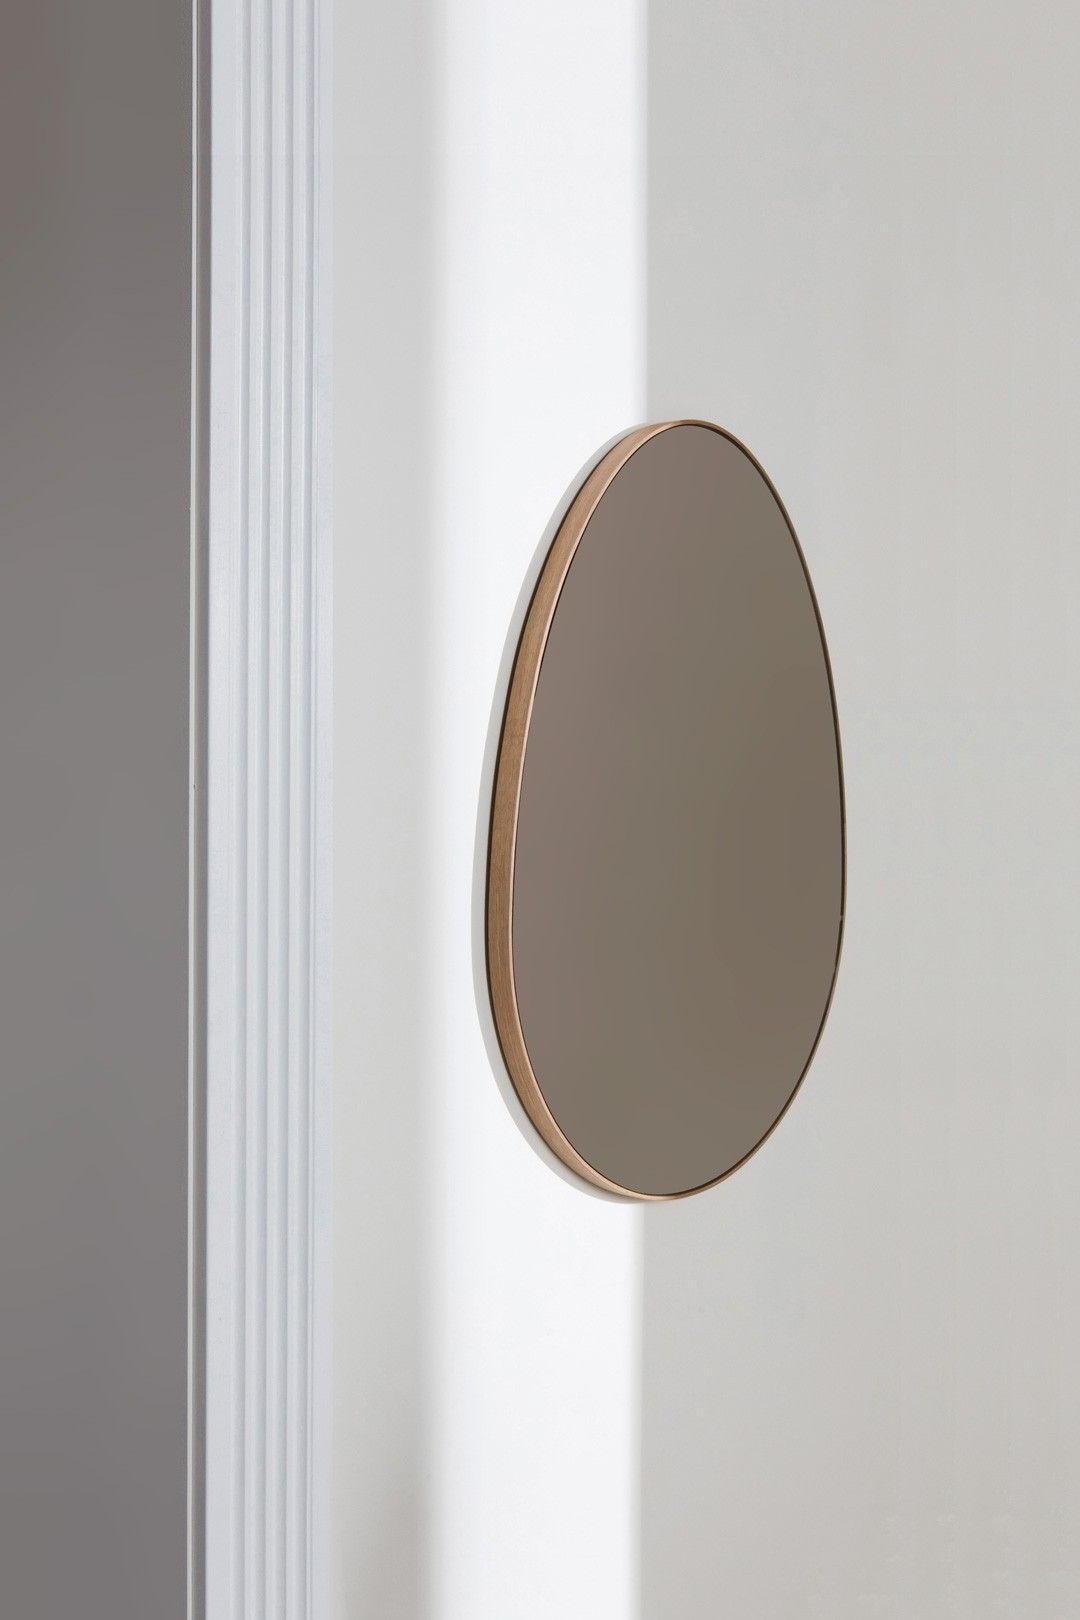 Famous High End Wall Mirrors With Regard To Bower Bower Studios Mirrors Egg Mirror Decorative Bronze Modern (View 18 of 20)